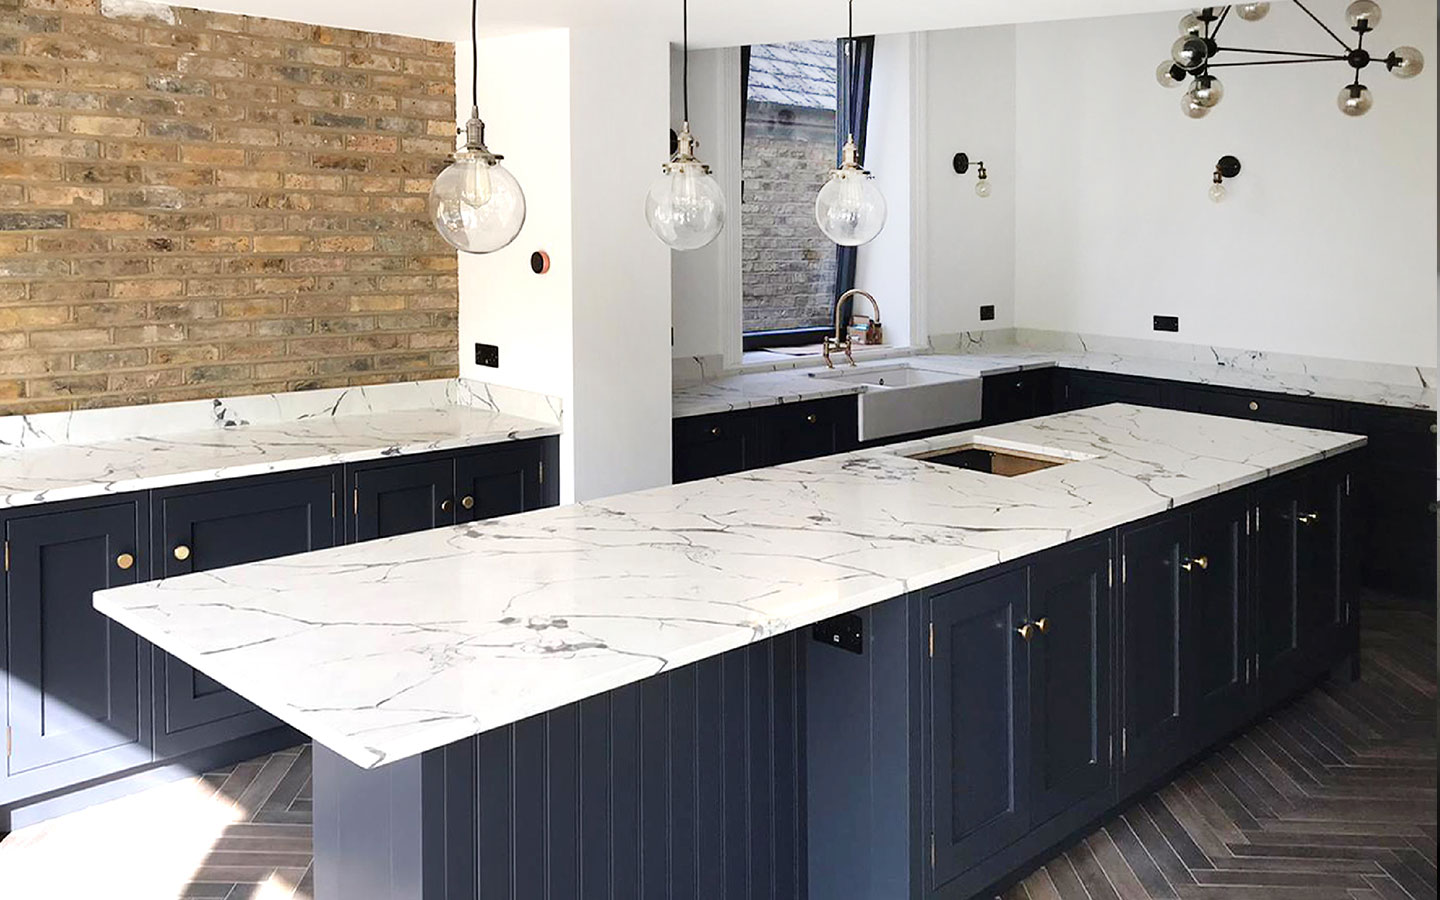 Why Choose Granite For Your Kitchen Worktops?